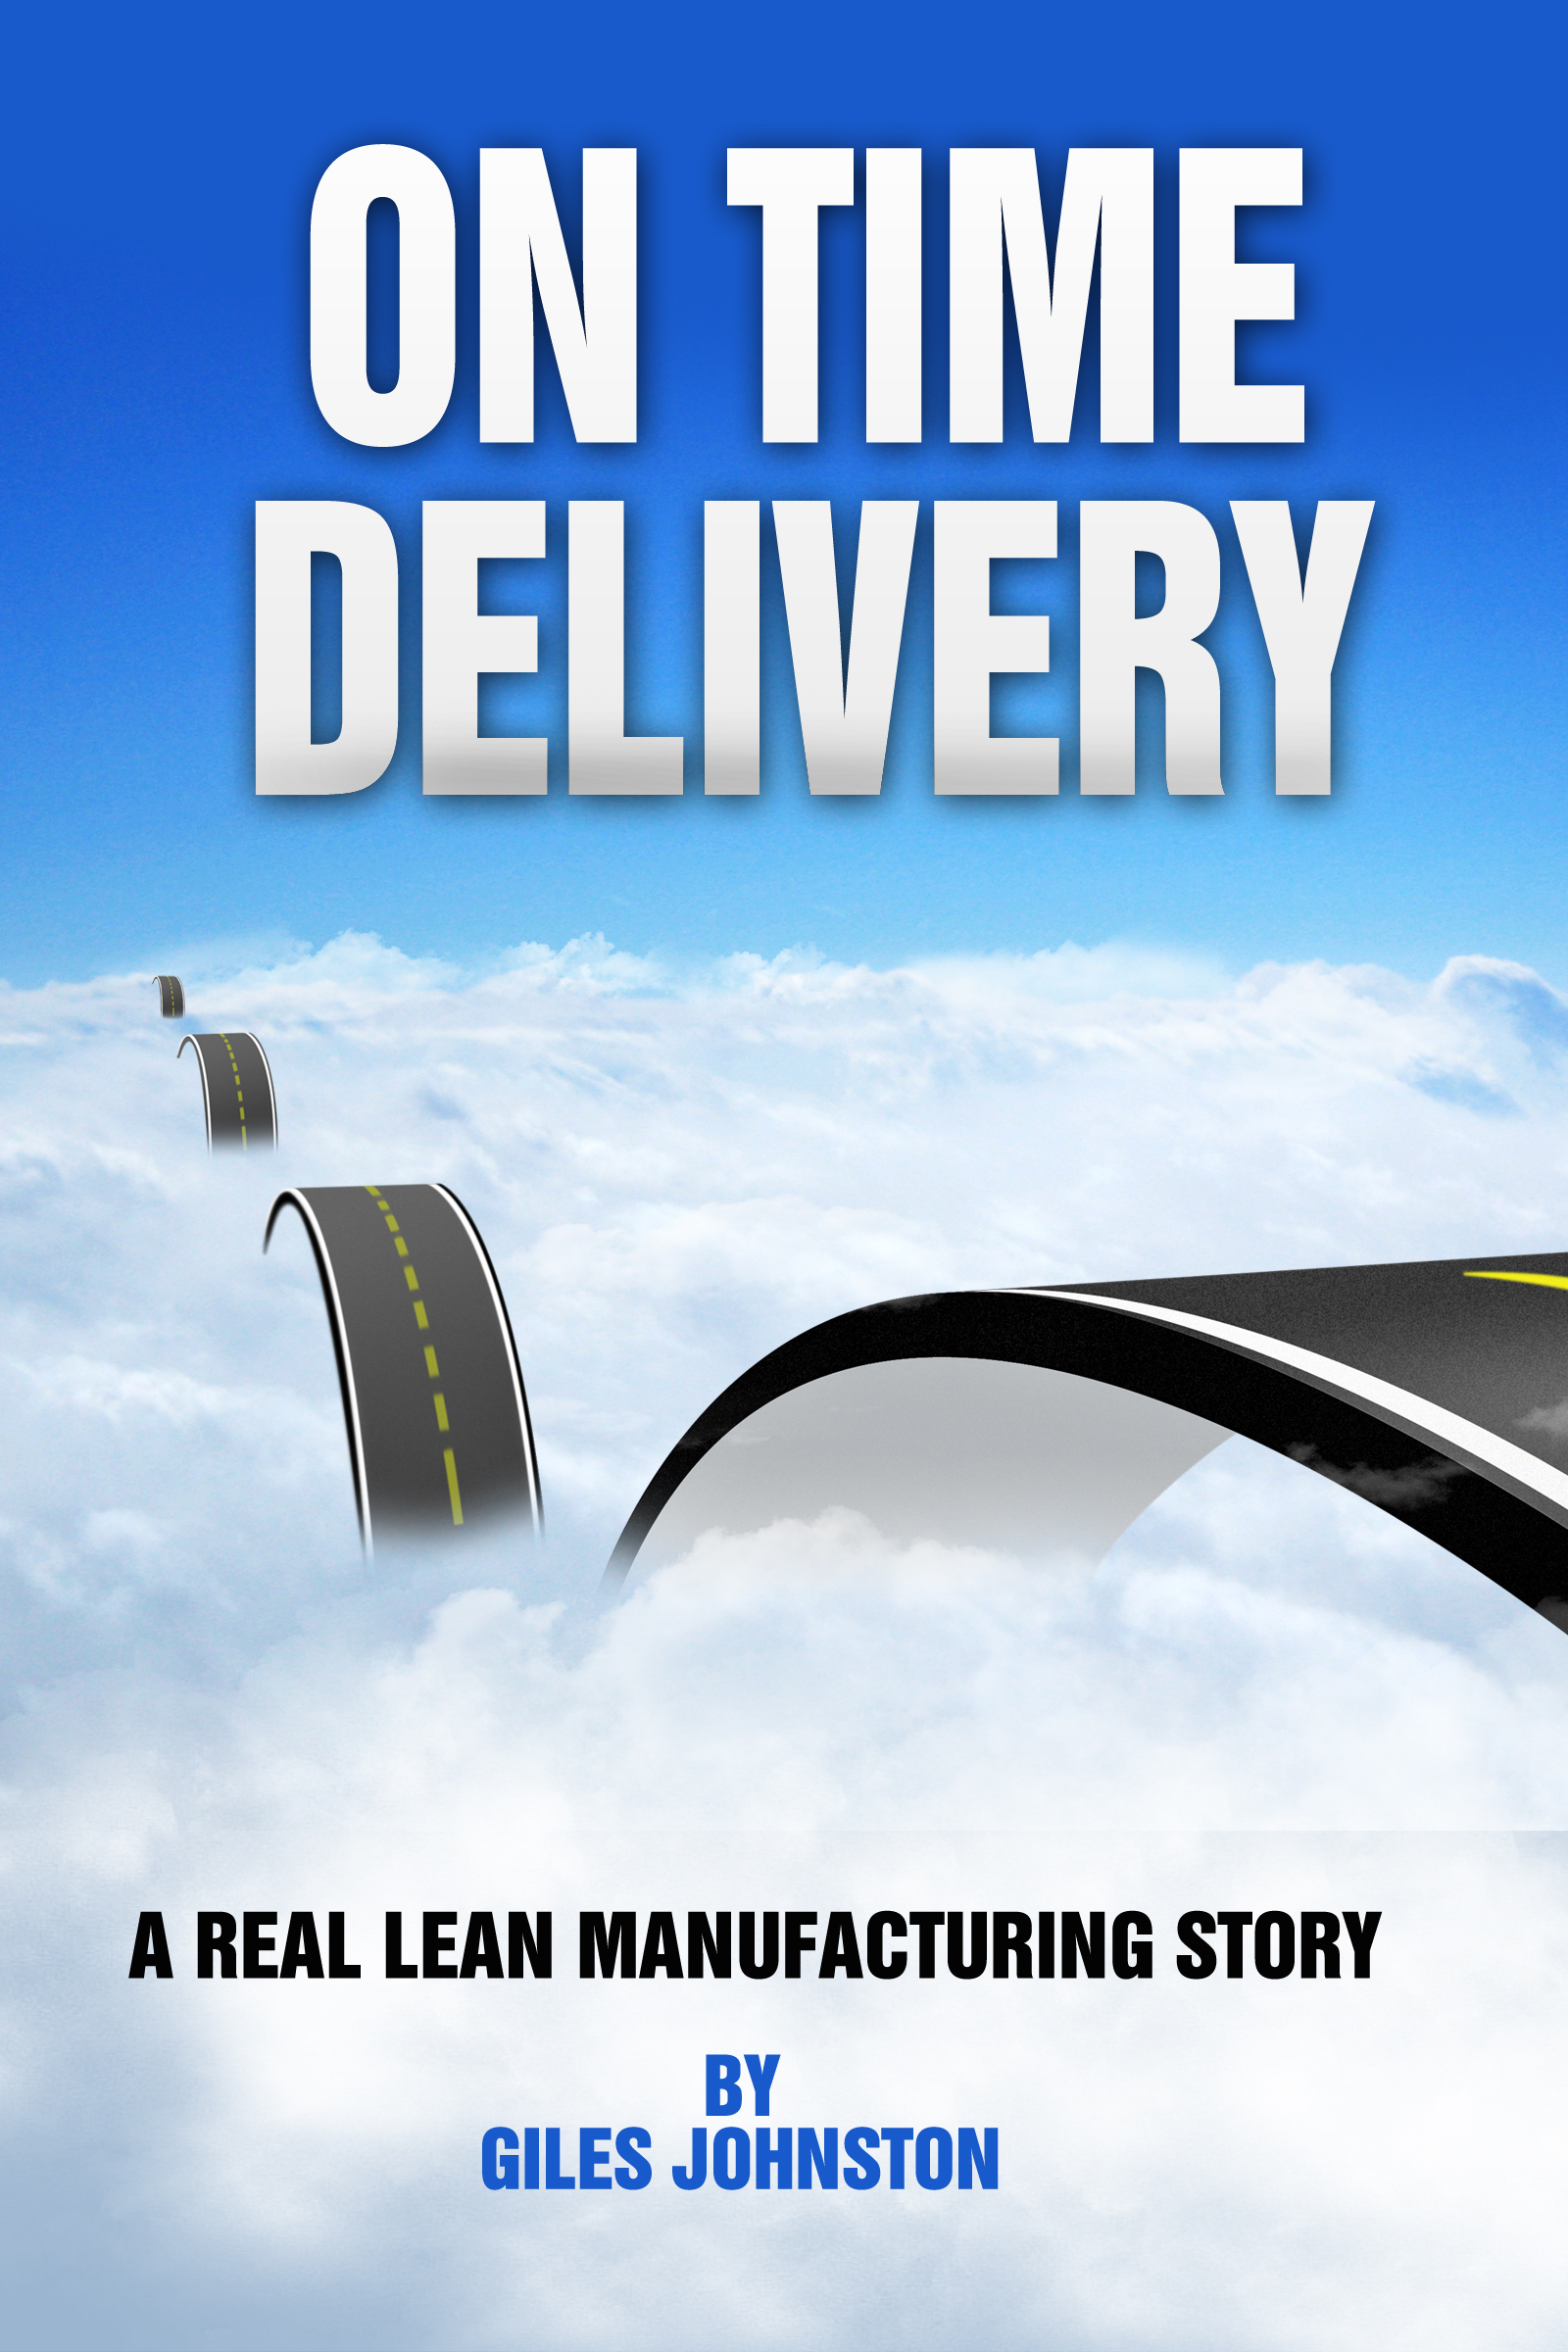 On Time Delivery (A Real Lean Manufacturing Story)